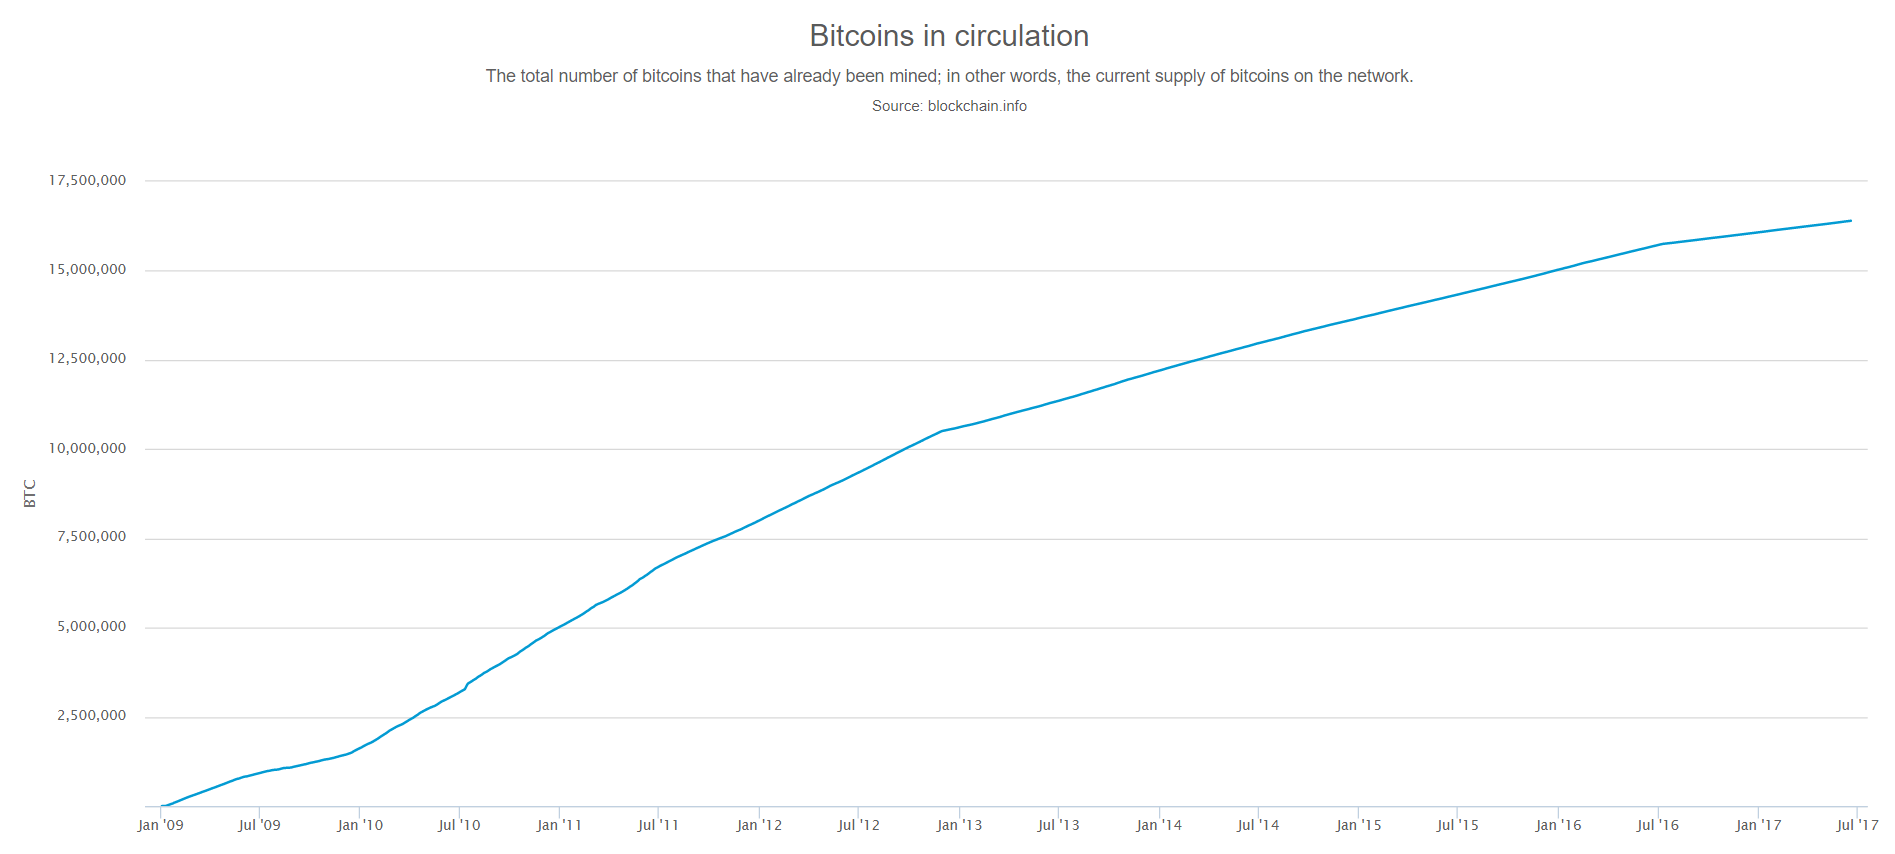 more than 21 million bitcoins rate